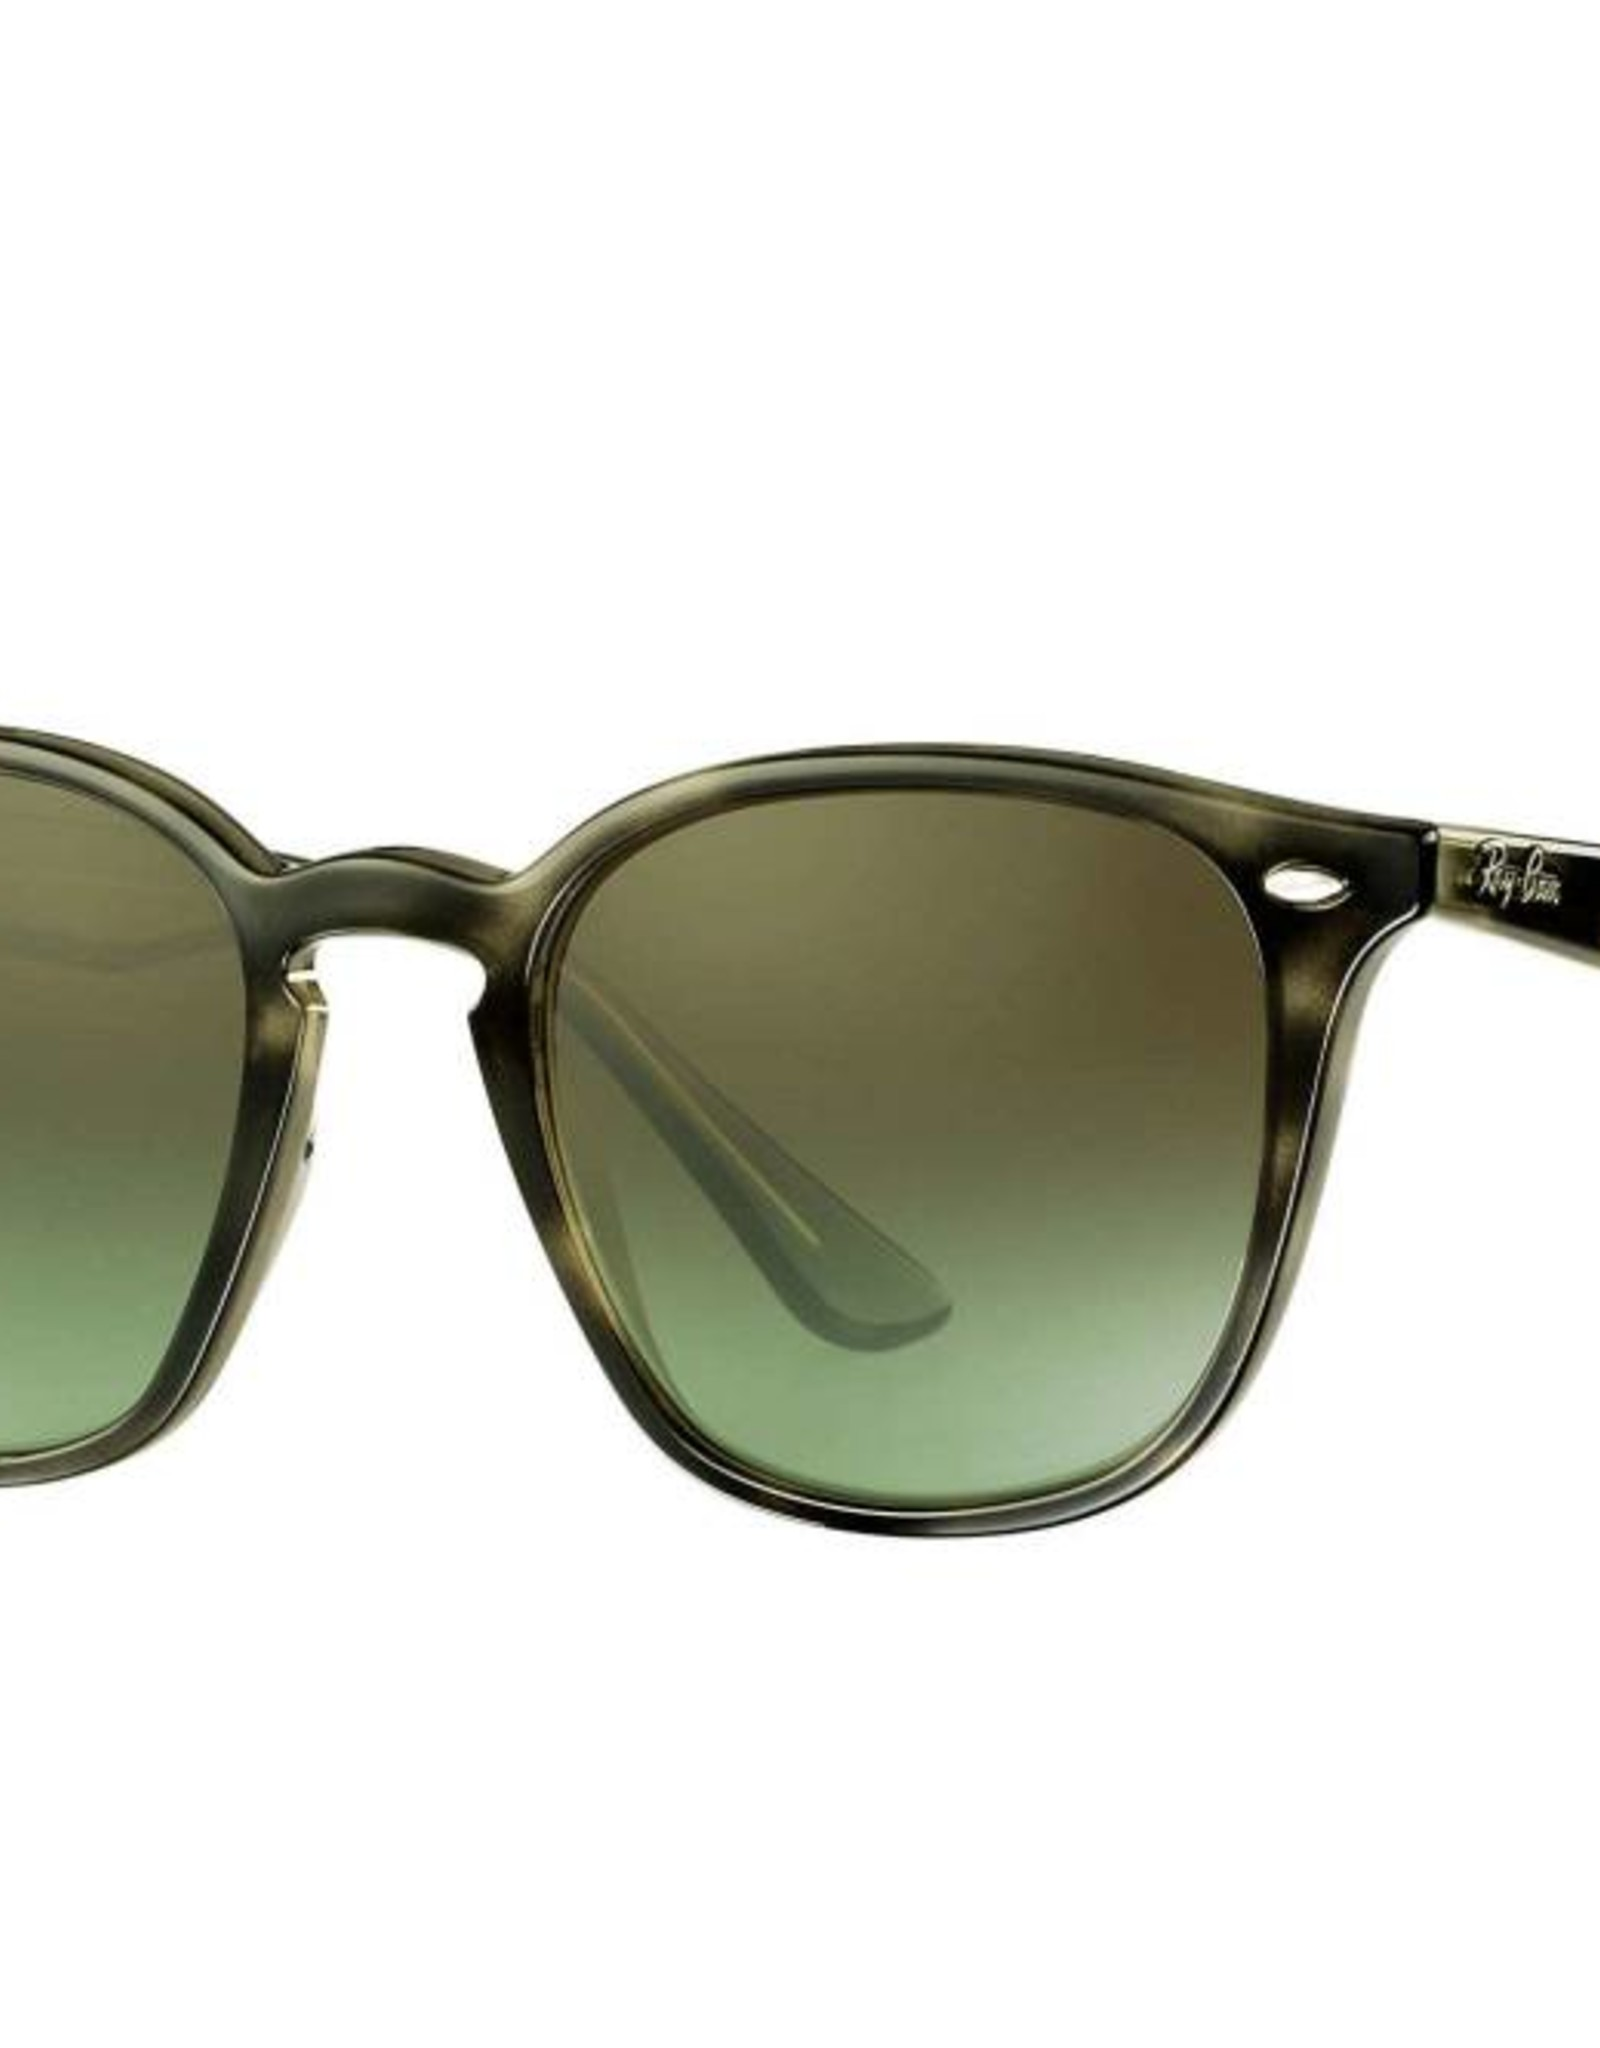 RAY BAN RAY BAN INJECTED UNISEX